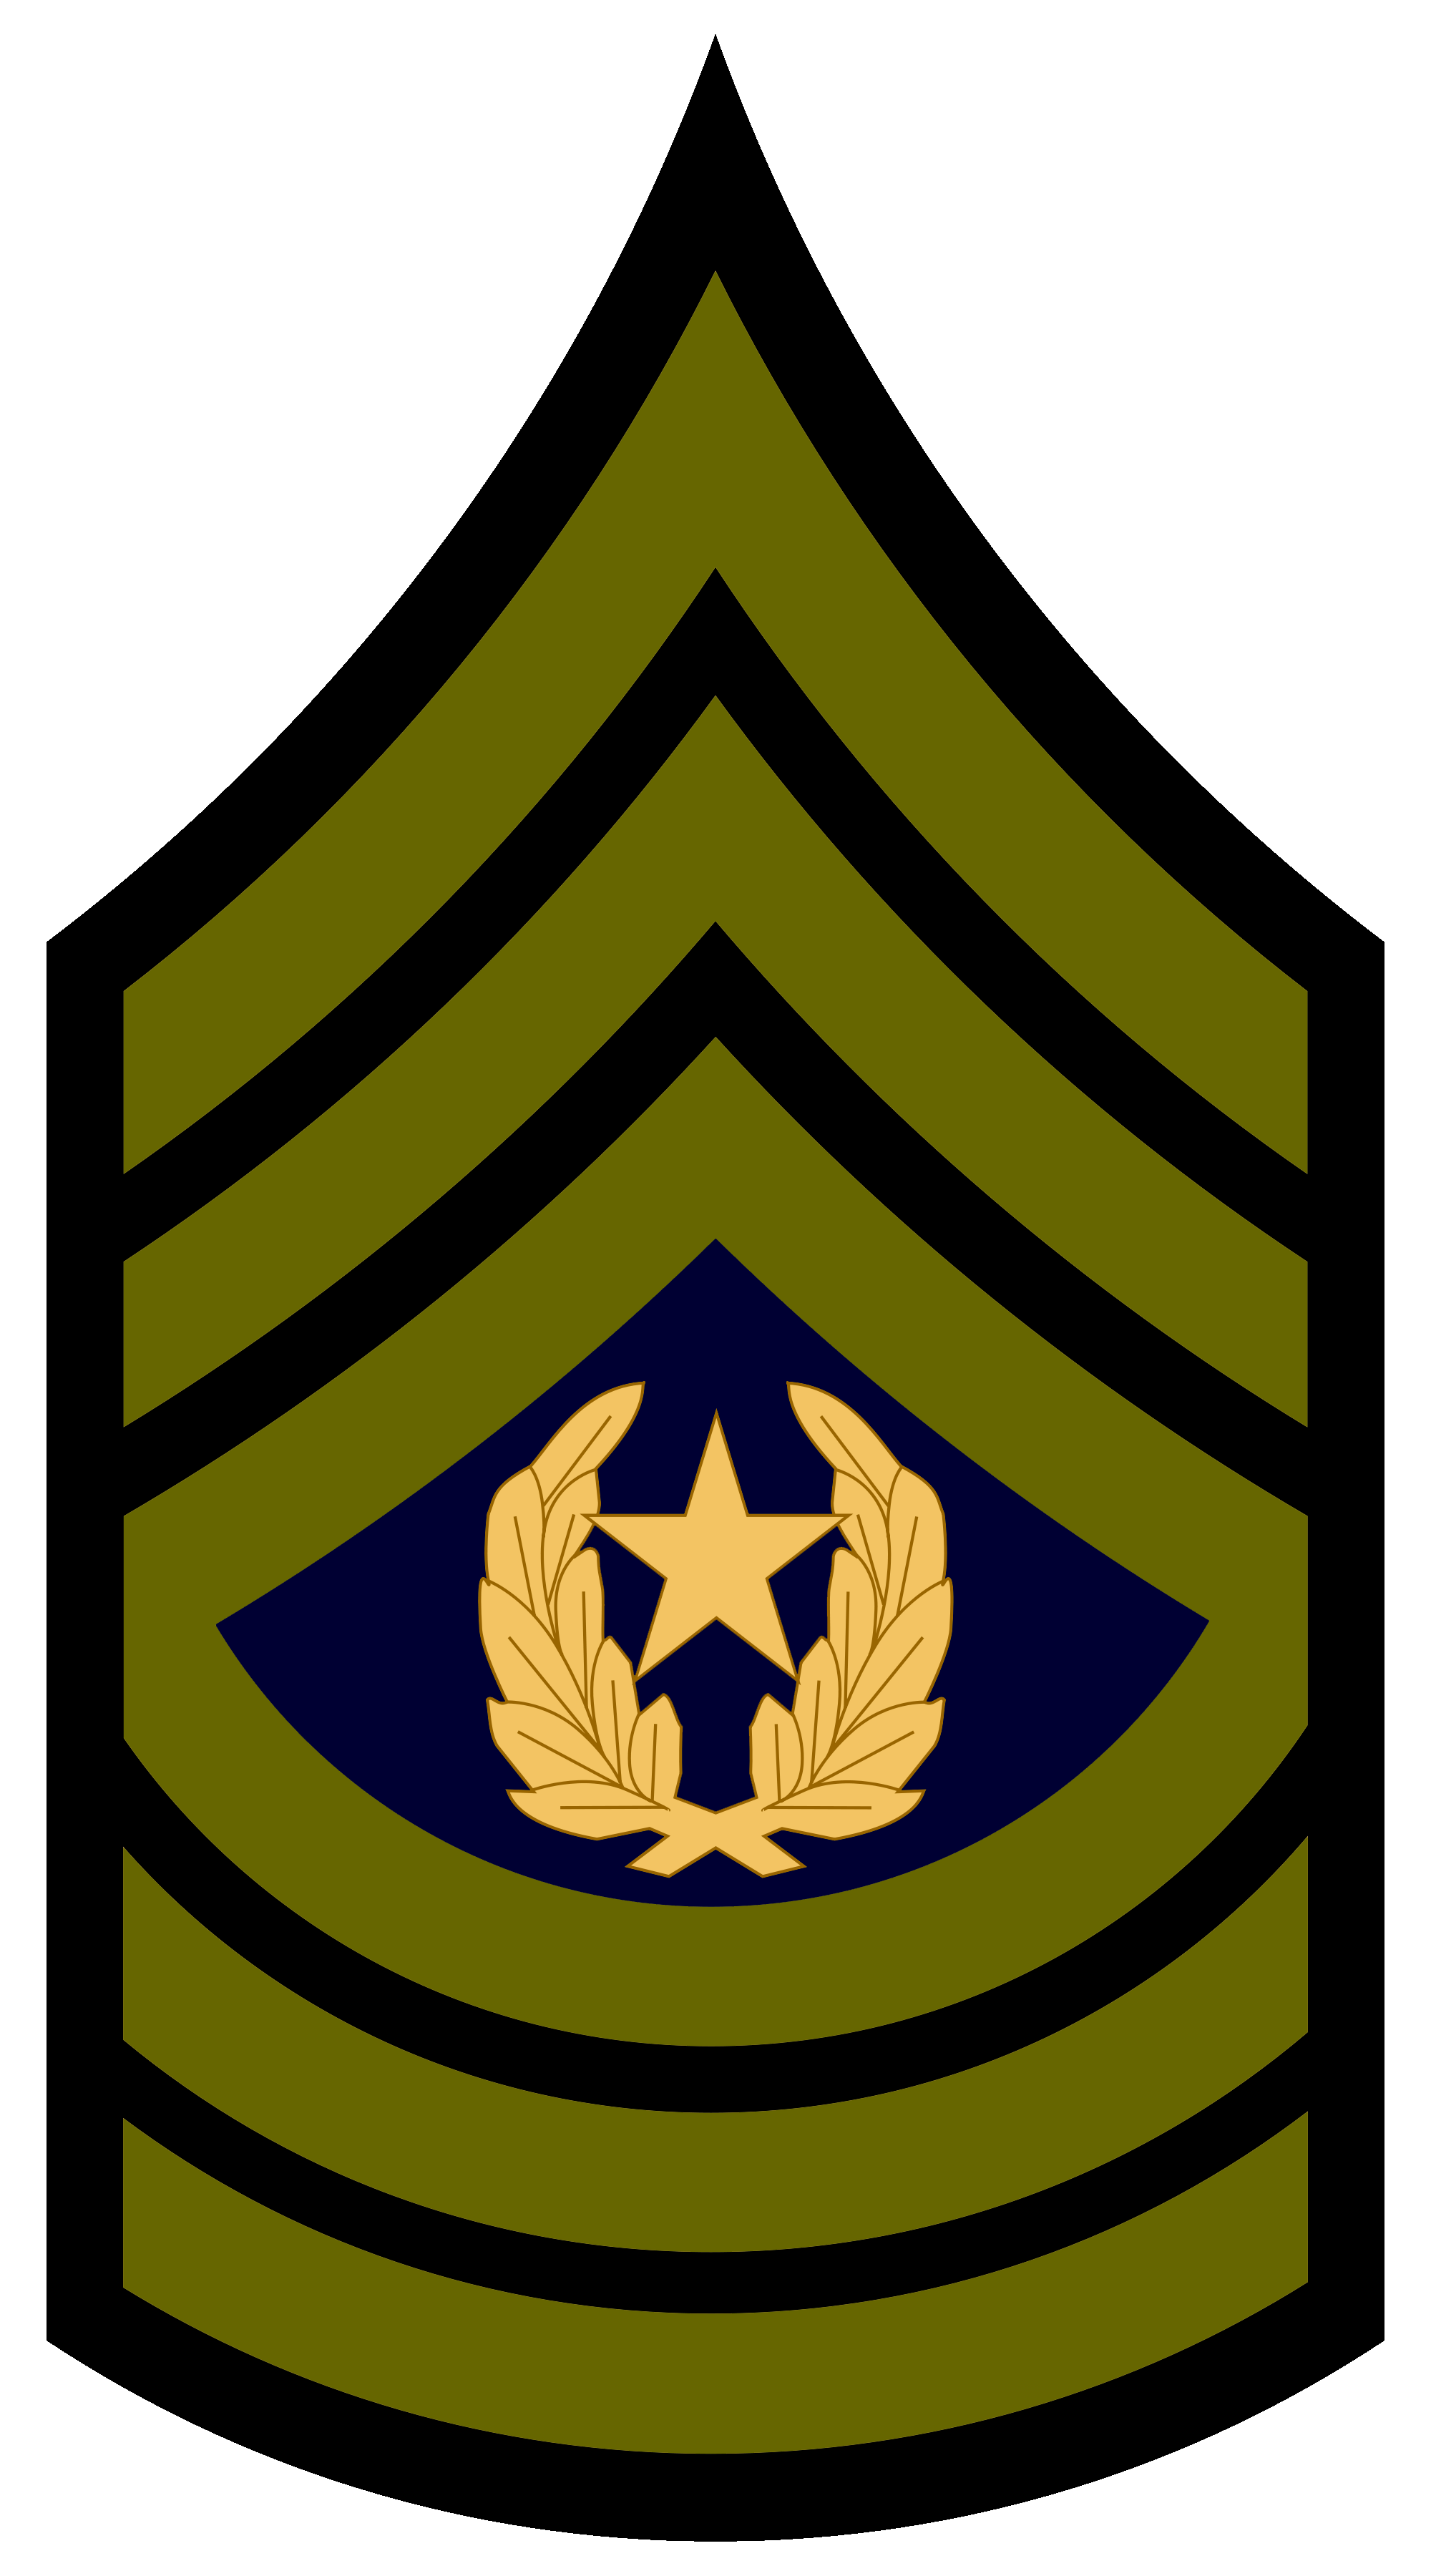 . PlusPng.com Military Rank Insignia Sergeant Subdued; UNSC A Command Sergeant  Majorpng PlusPng.com  - Army Csm Rank PNG